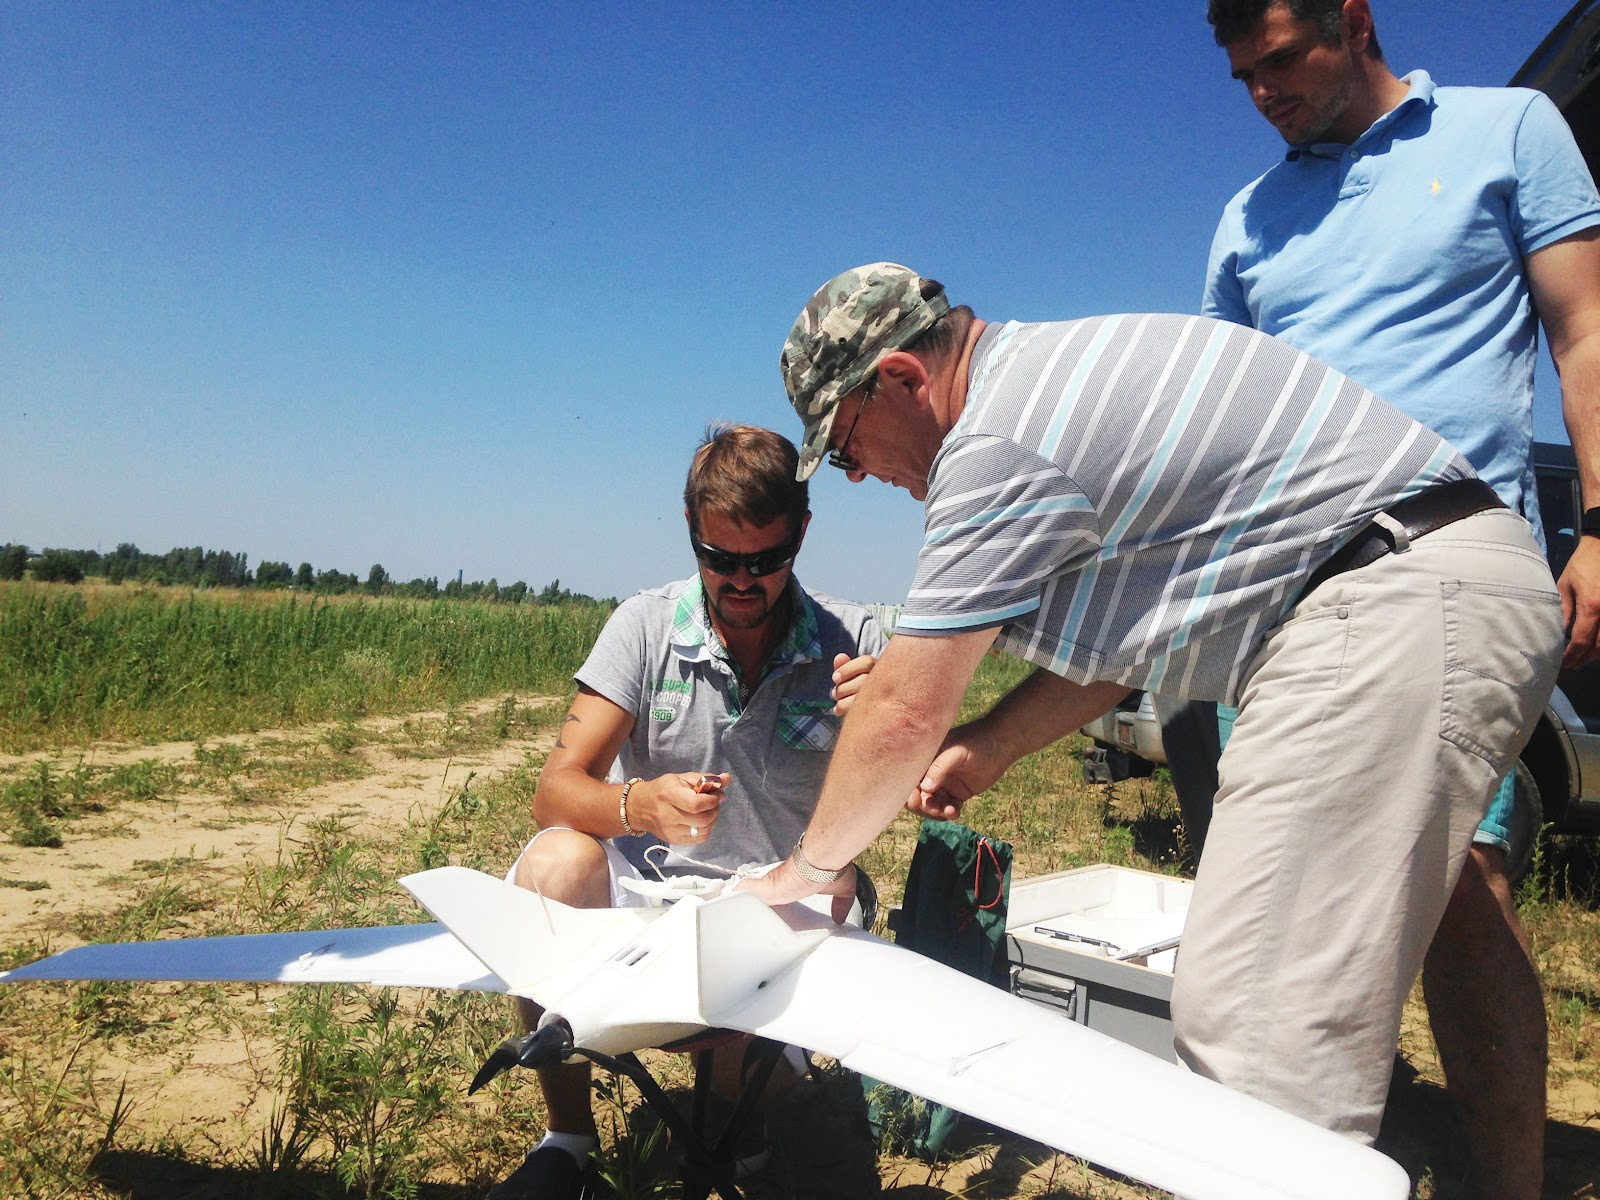 After training the UAV was delivered to Ukrainian forces at the front